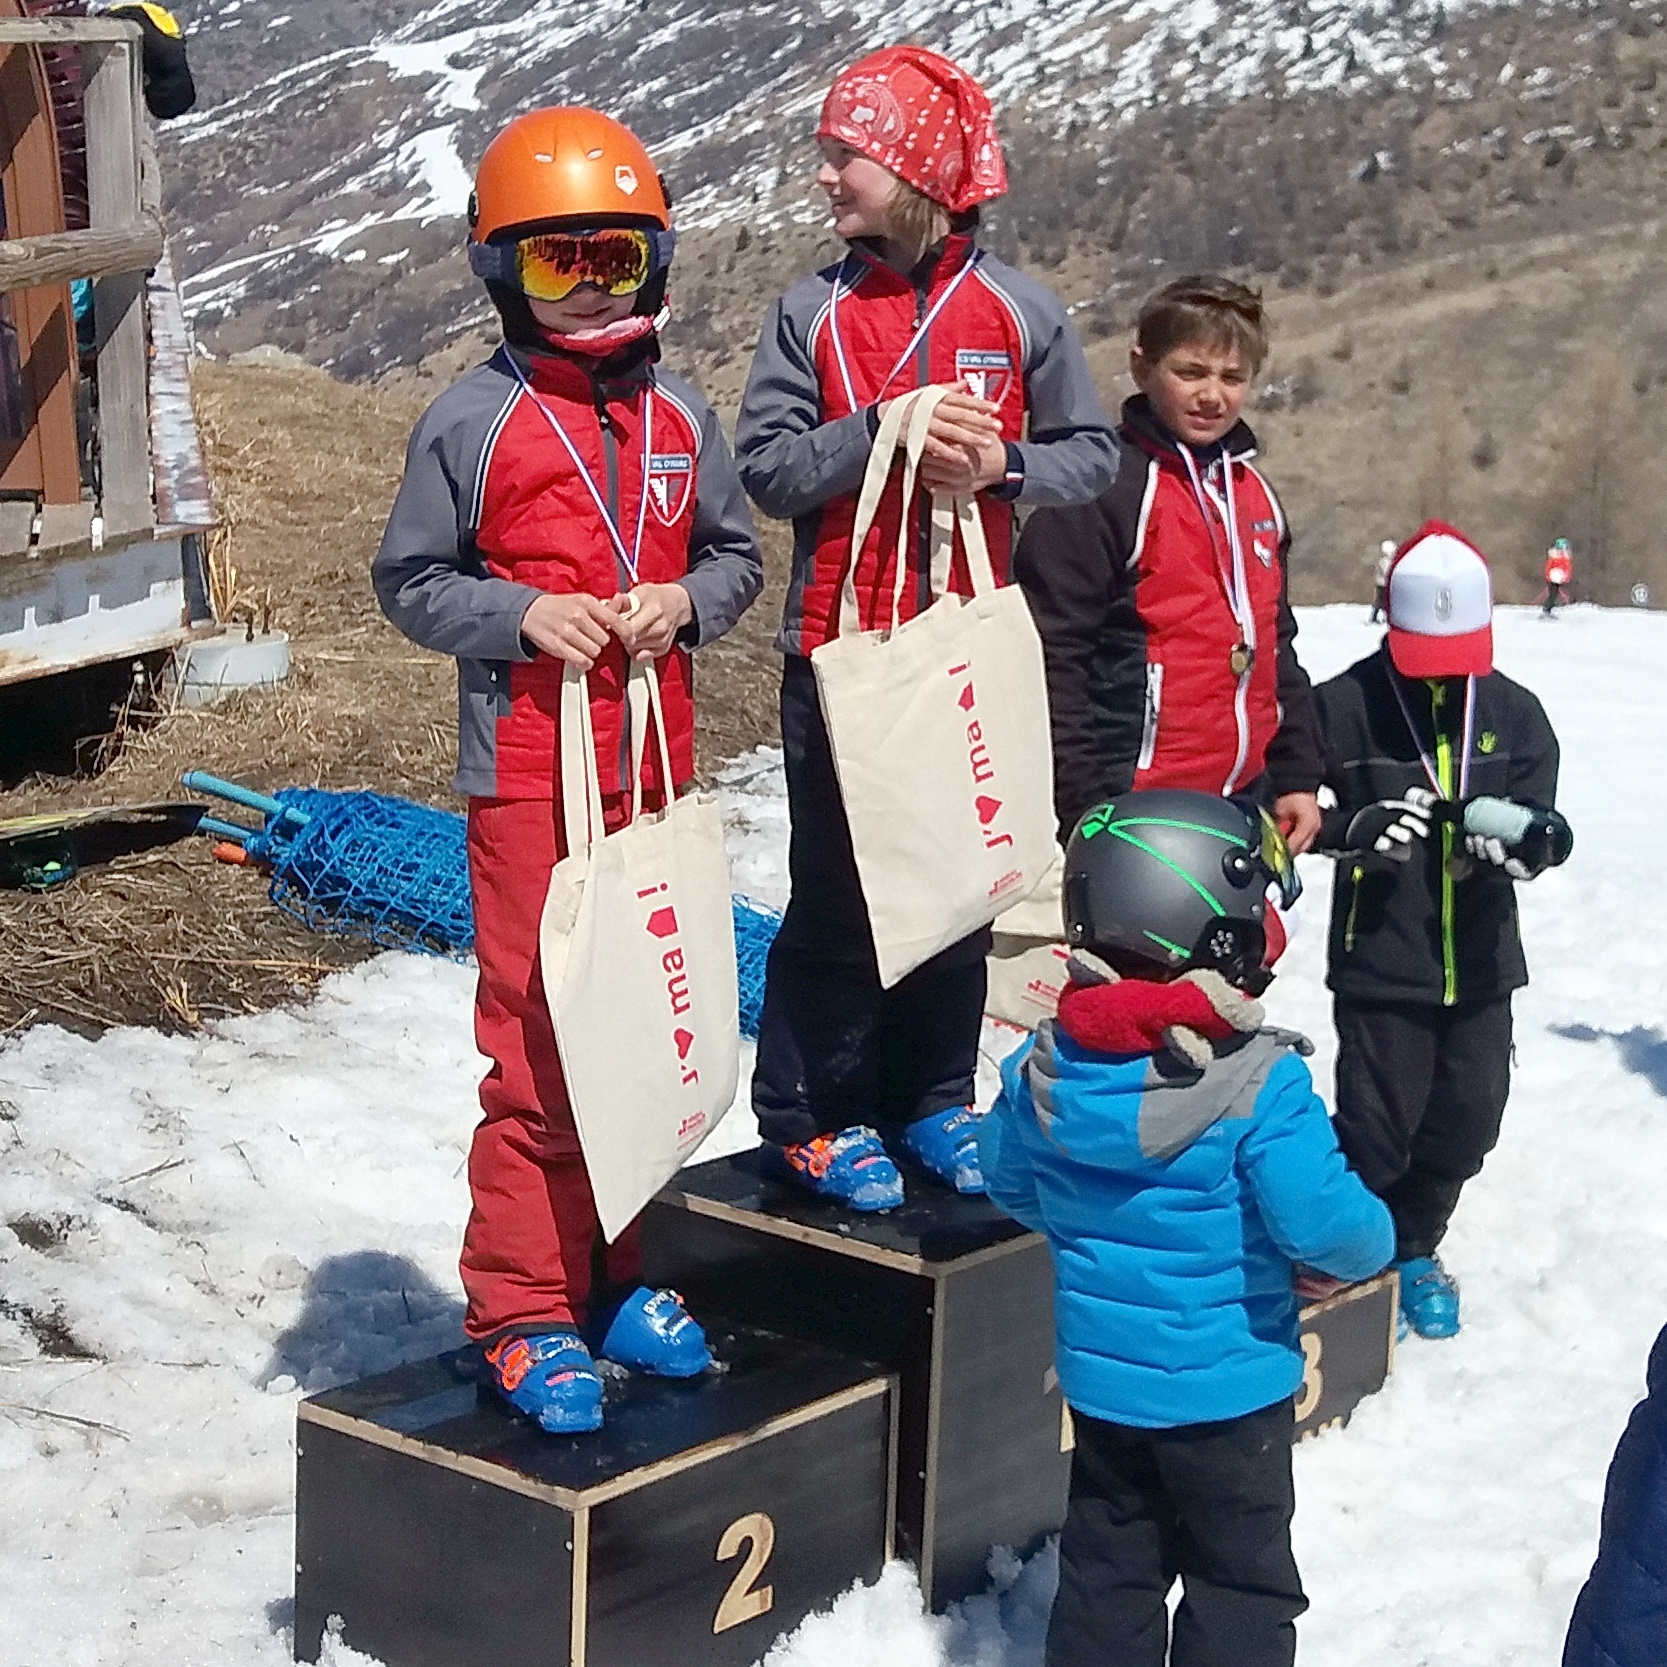 20190414Valloire-course du club (7)